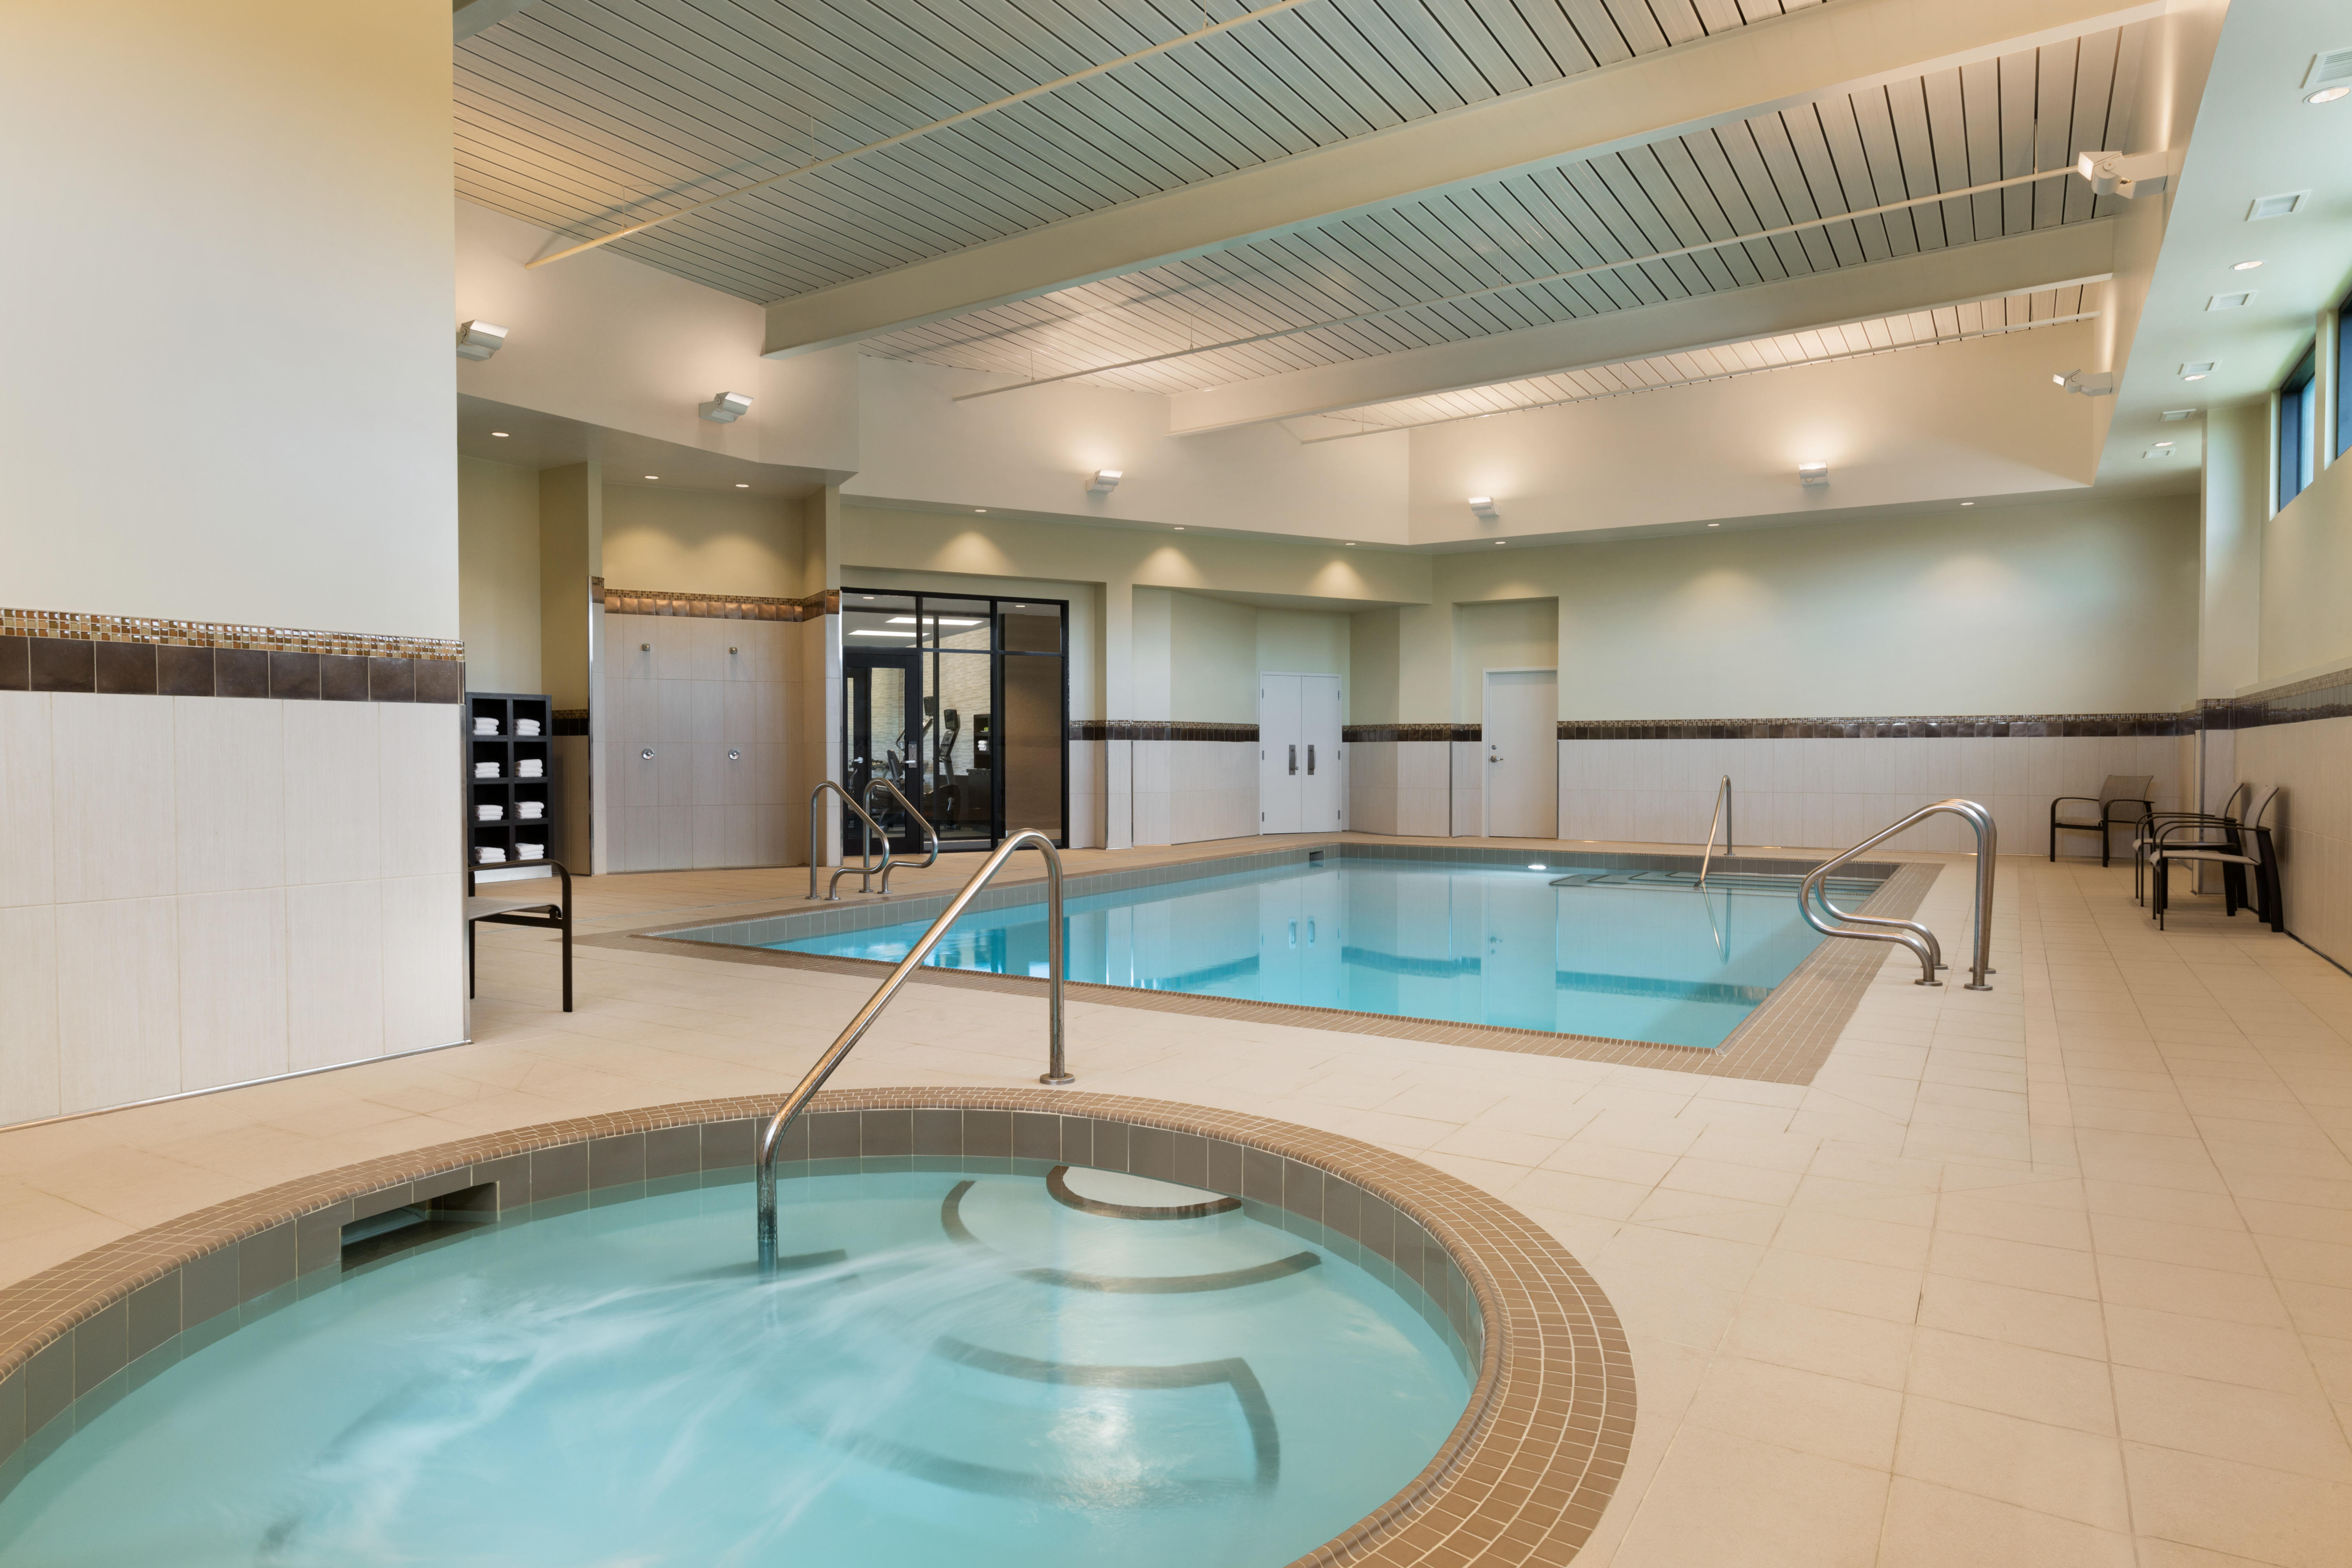 Indoor Swimming Pool and Hot Tub Courtyard by Marriott Cold Lake Cold Lake (780)594-0989